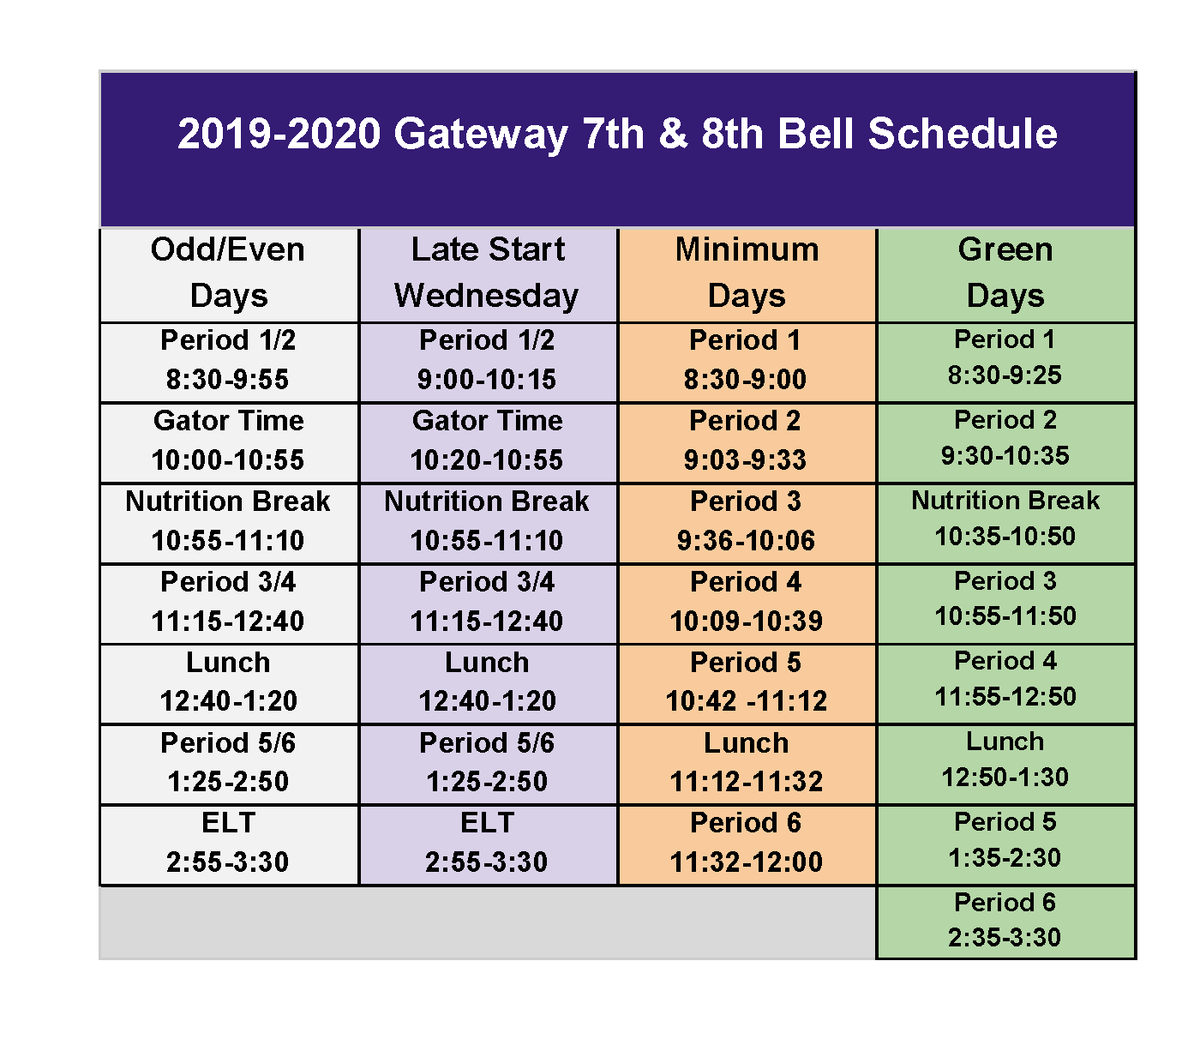 7th & 8th bell schedule